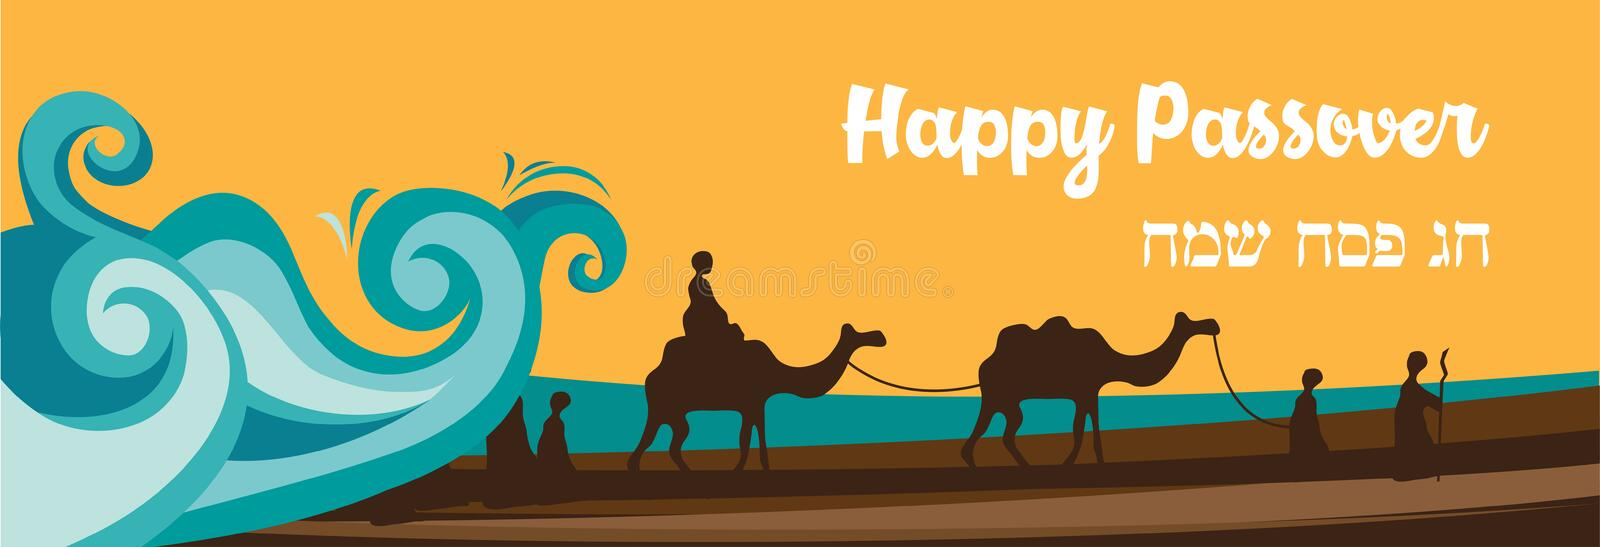 Jewish holiday banner template for Passover holiday. Group of People with Camels Caravan Riding in Realistic Wide Desert. Sands in Middle East. Vector and royalty free illustration